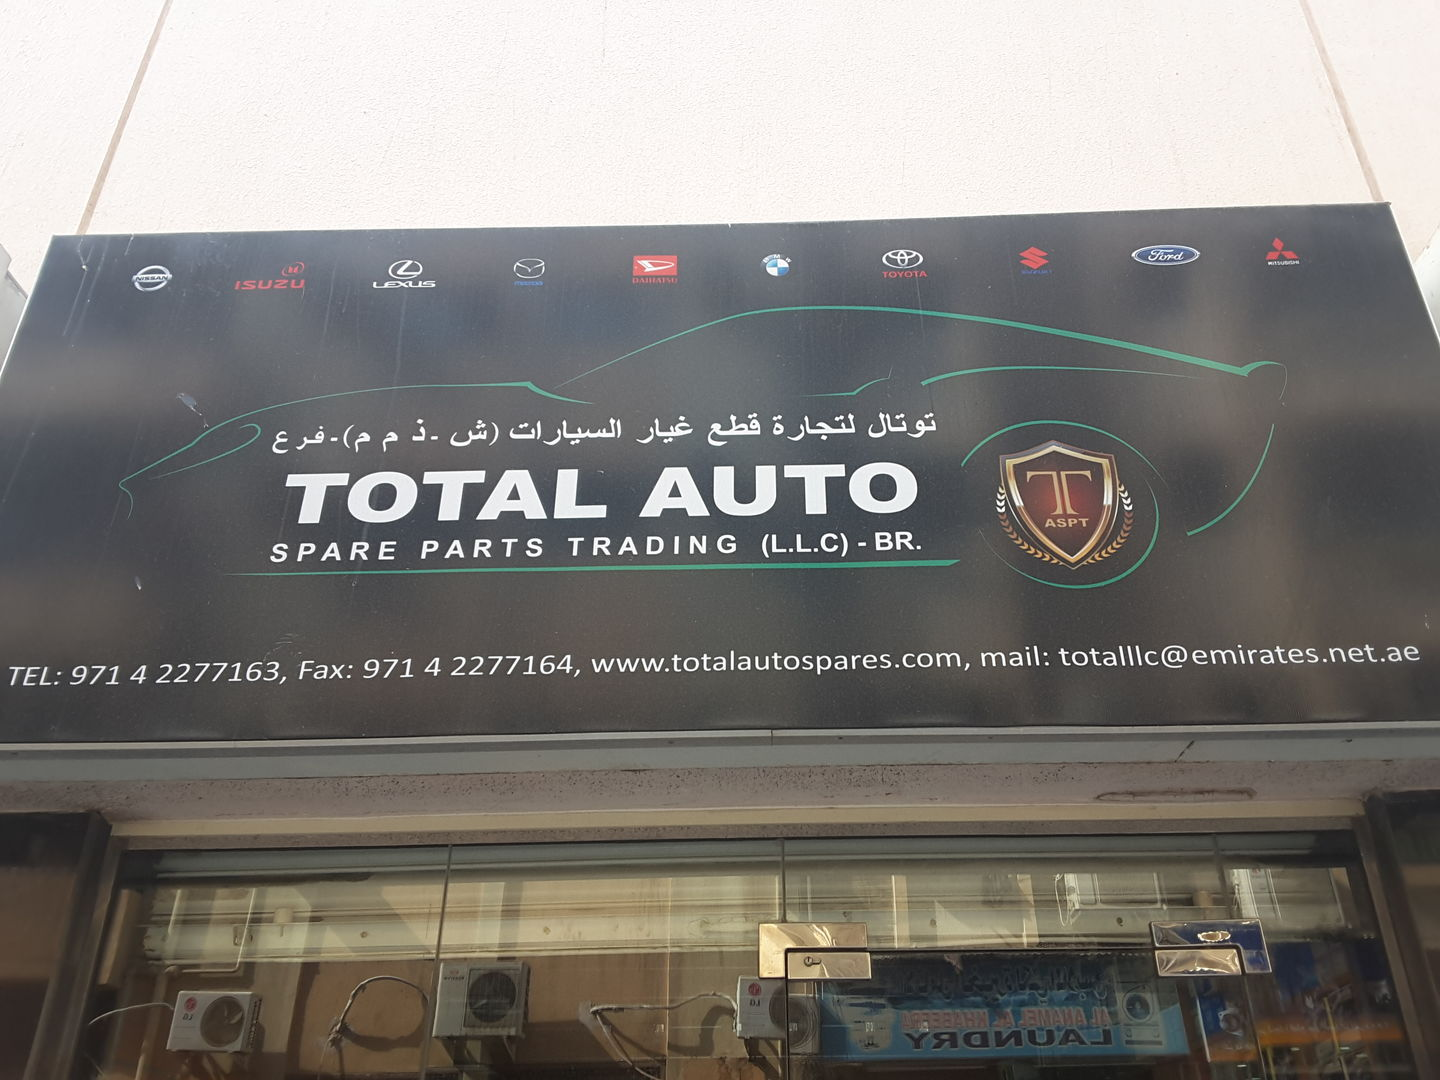 HiDubai-business-total-auto-spare-parts-trading-transport-vehicle-services-auto-spare-parts-accessories-naif-dubai-5